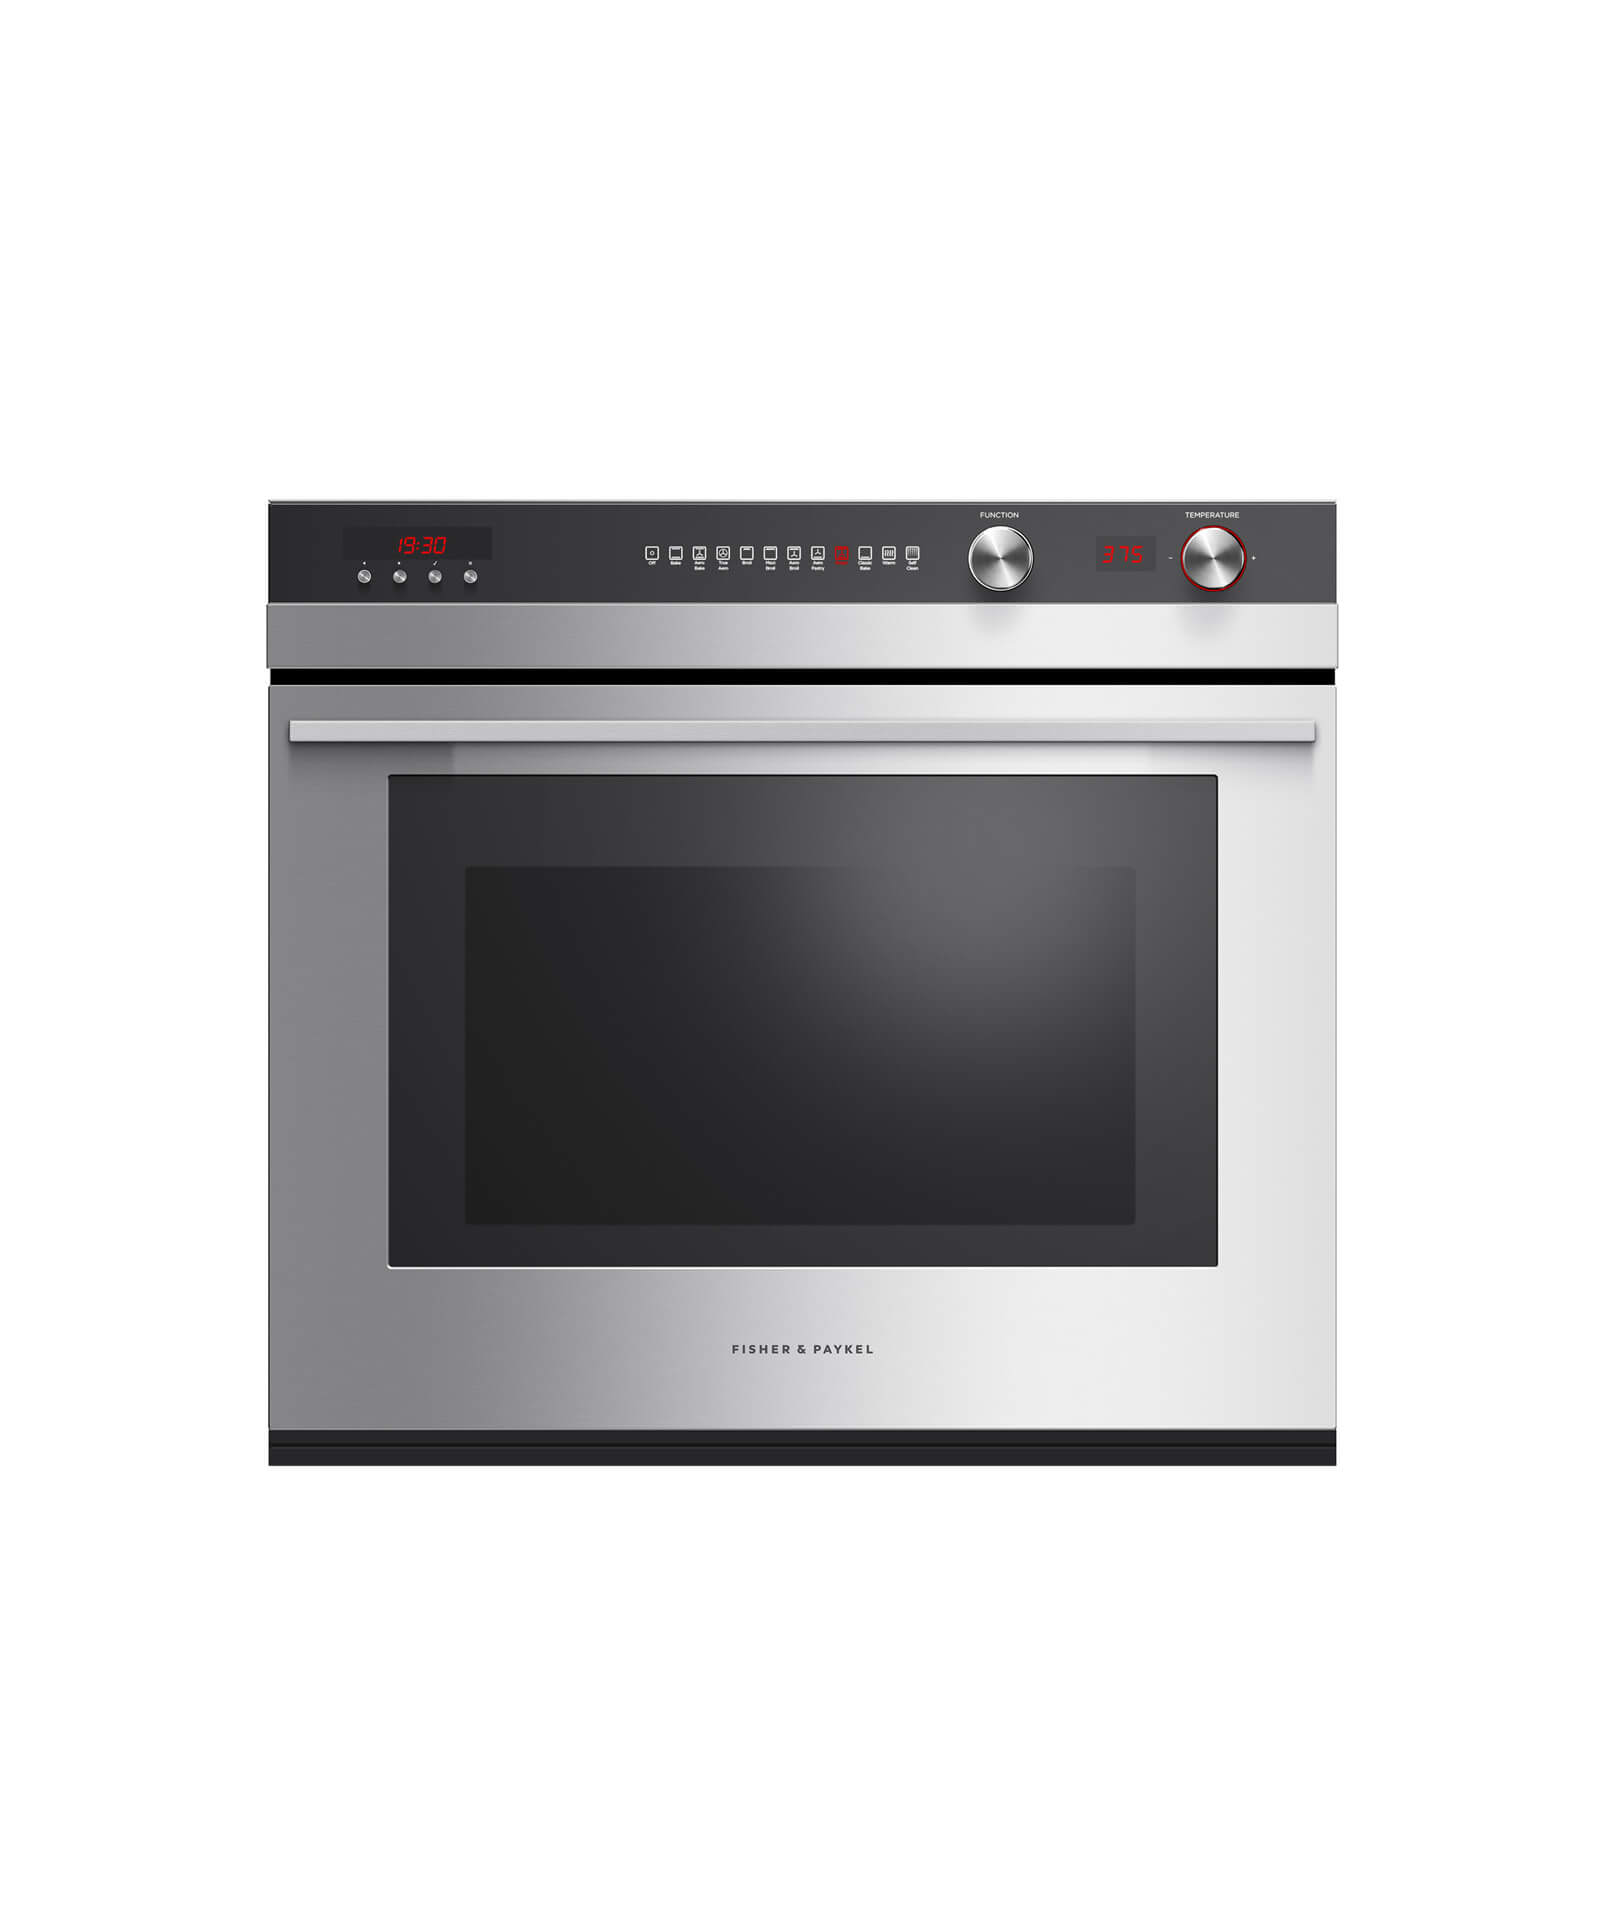 """Fisher and Paykel Built-in Oven, 30"""" 4.1 cu ft, 11 Function"""